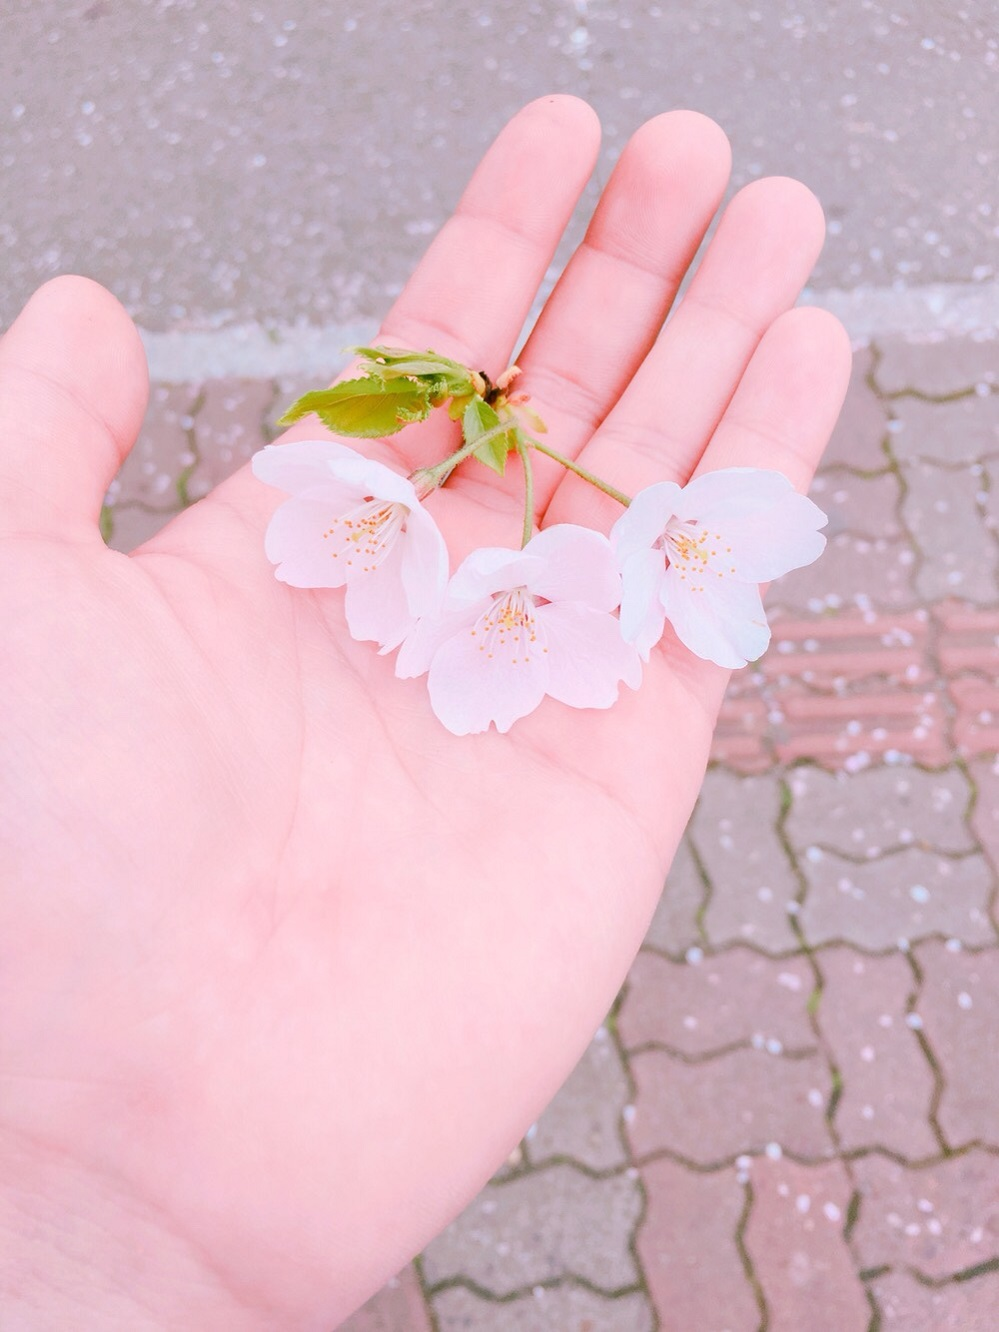 korea-cherry-blossoms-in-hand